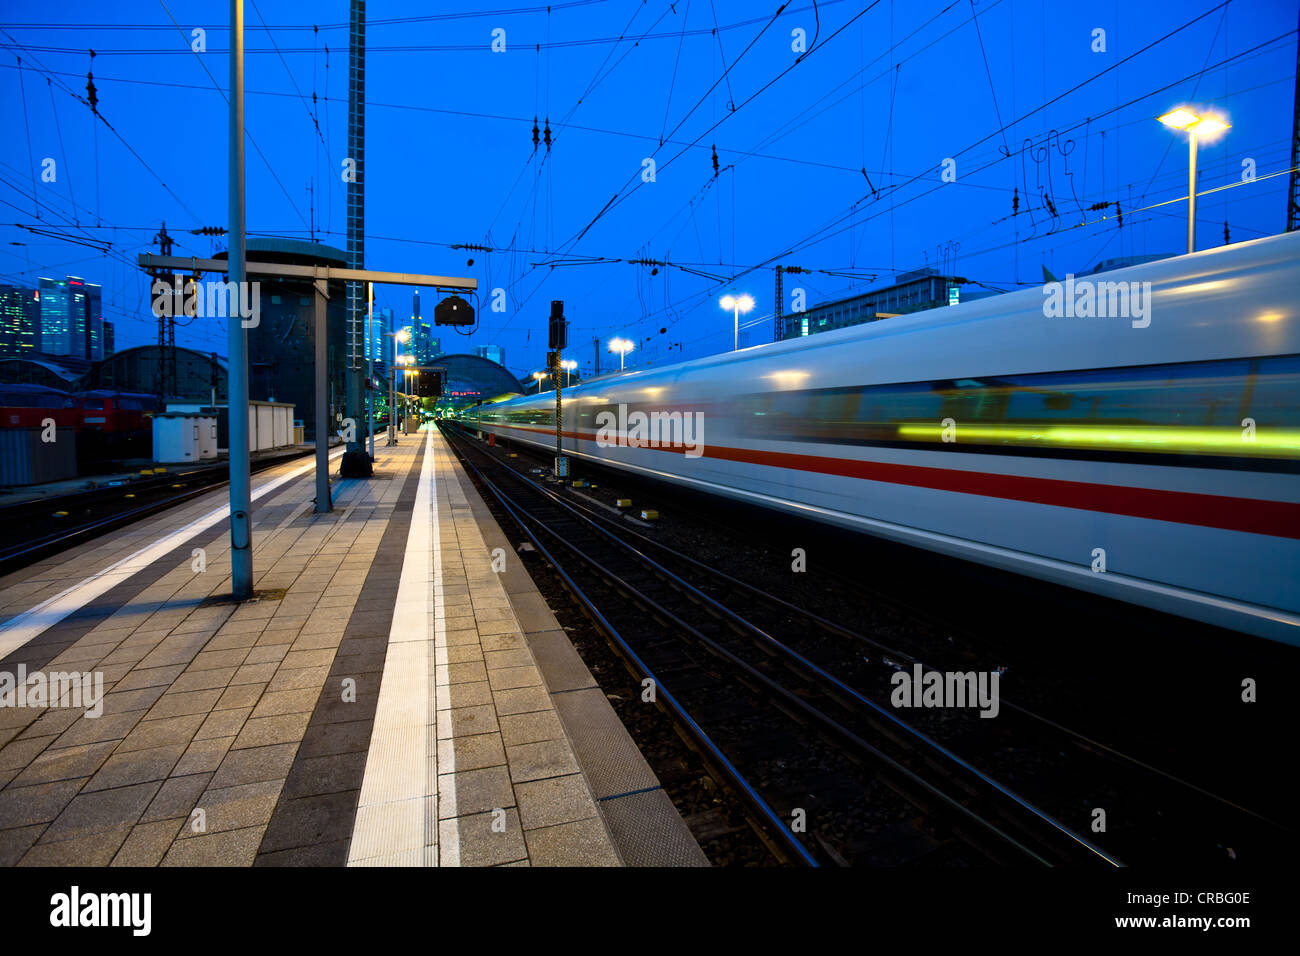 Intercity-Express, ICE train arriving at the main station, Frankfurt am Main, Hesse, Germany, Europe - Stock Image